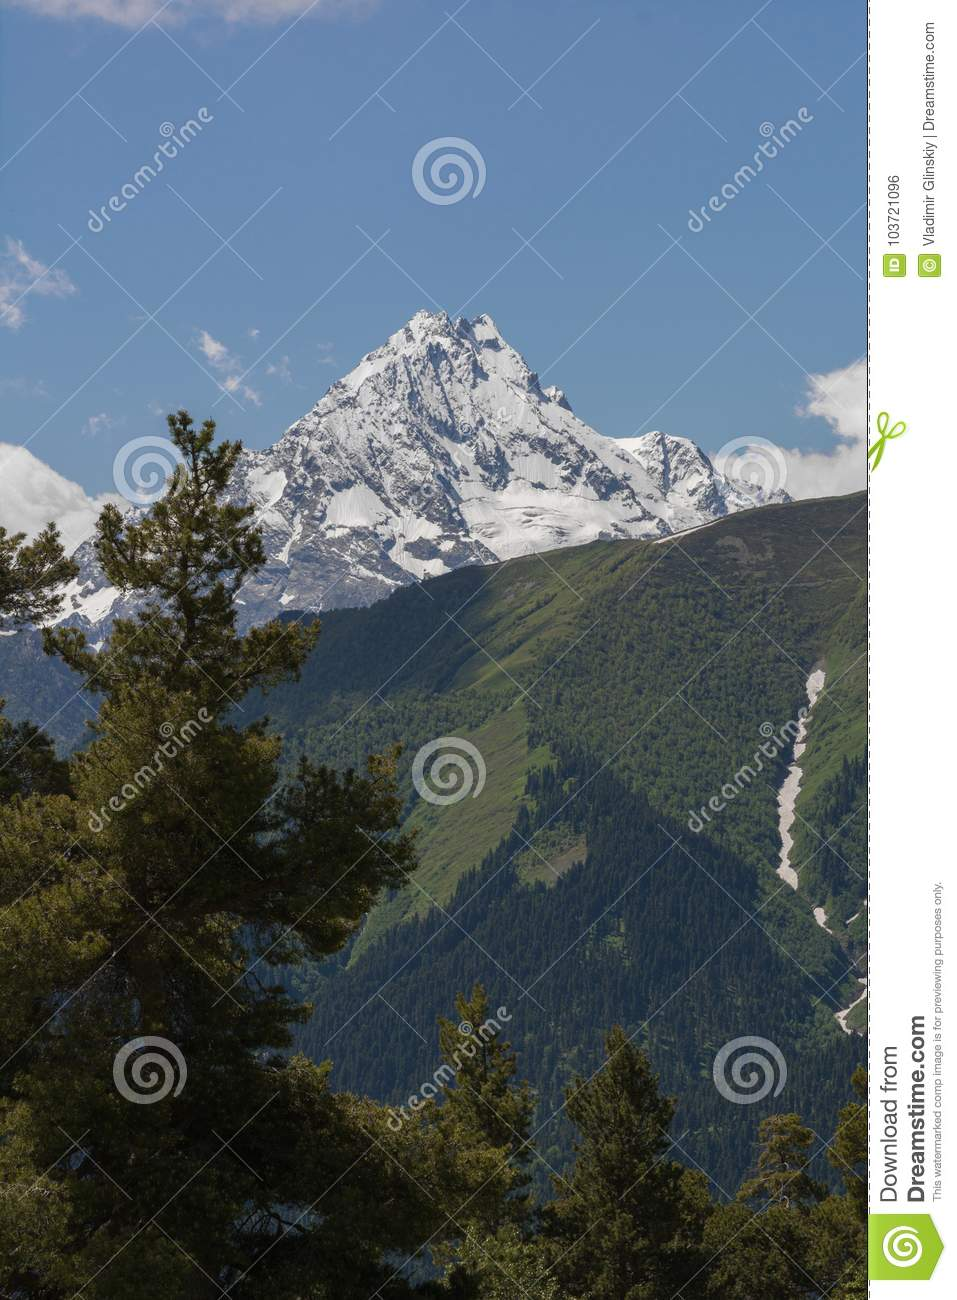 The Caucasus Mountains are a mountain system in West Asia between the Black Sea and the Caspian Sea in the Caucasus region.